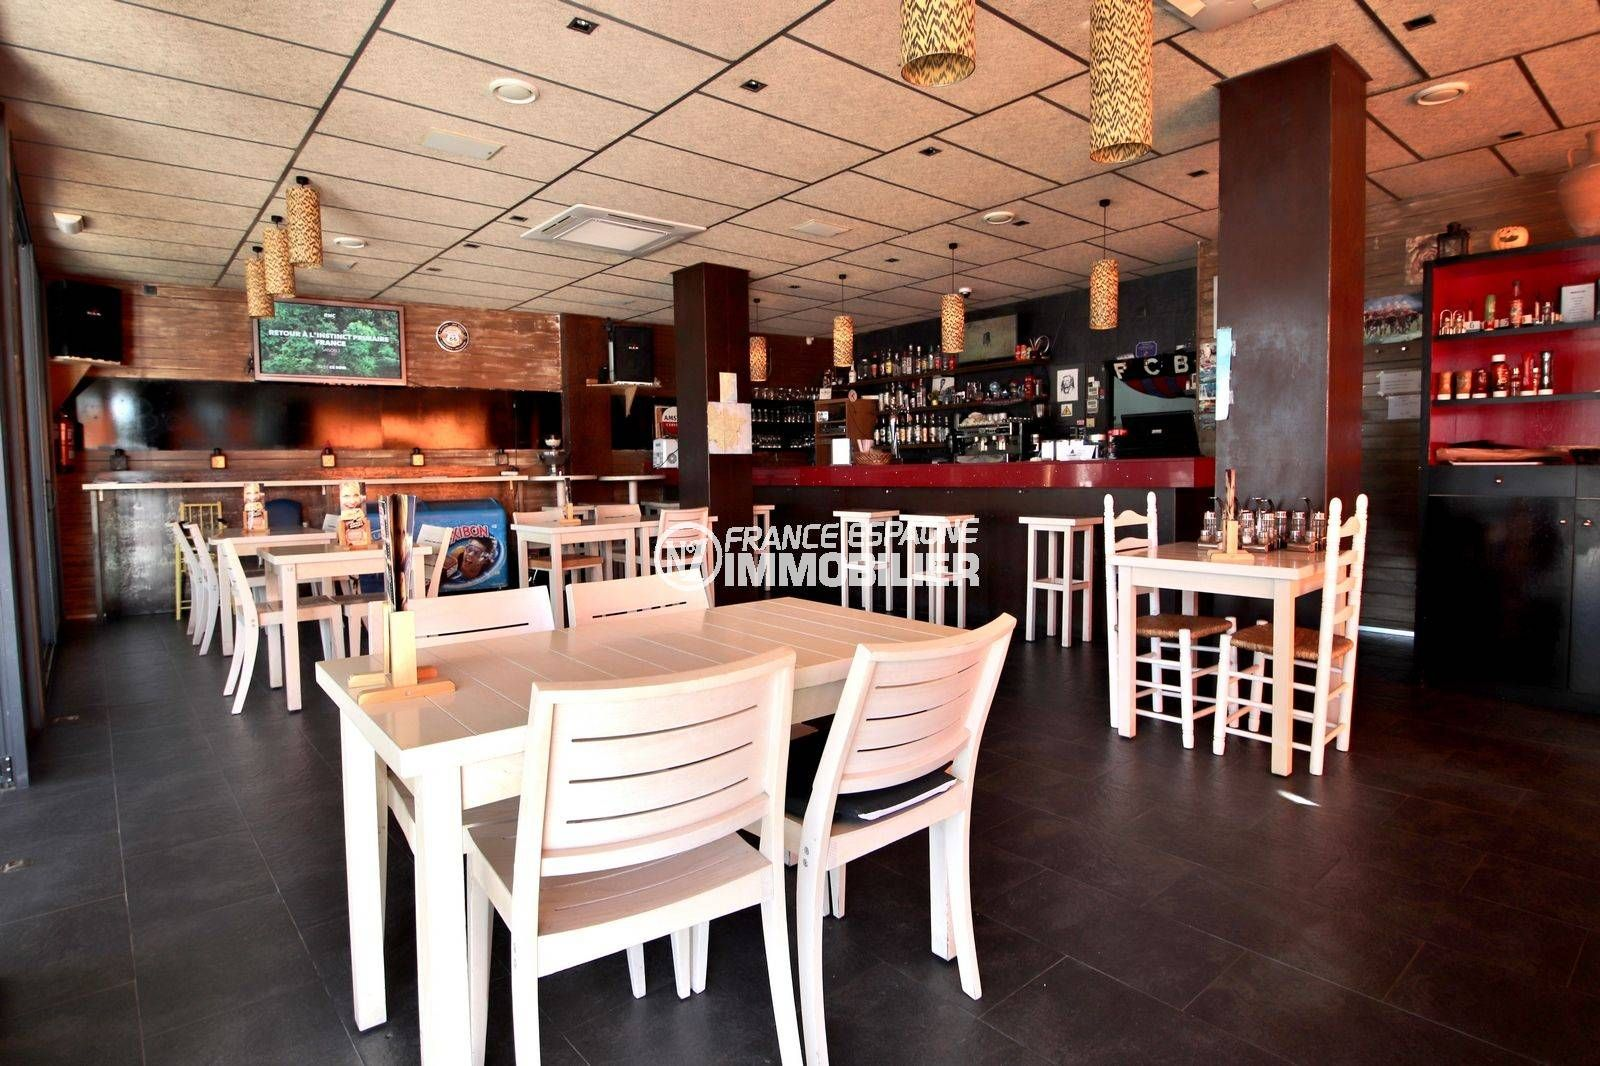 vente immobilier costa brava: bar restaurant ref.3816, 66 couverts